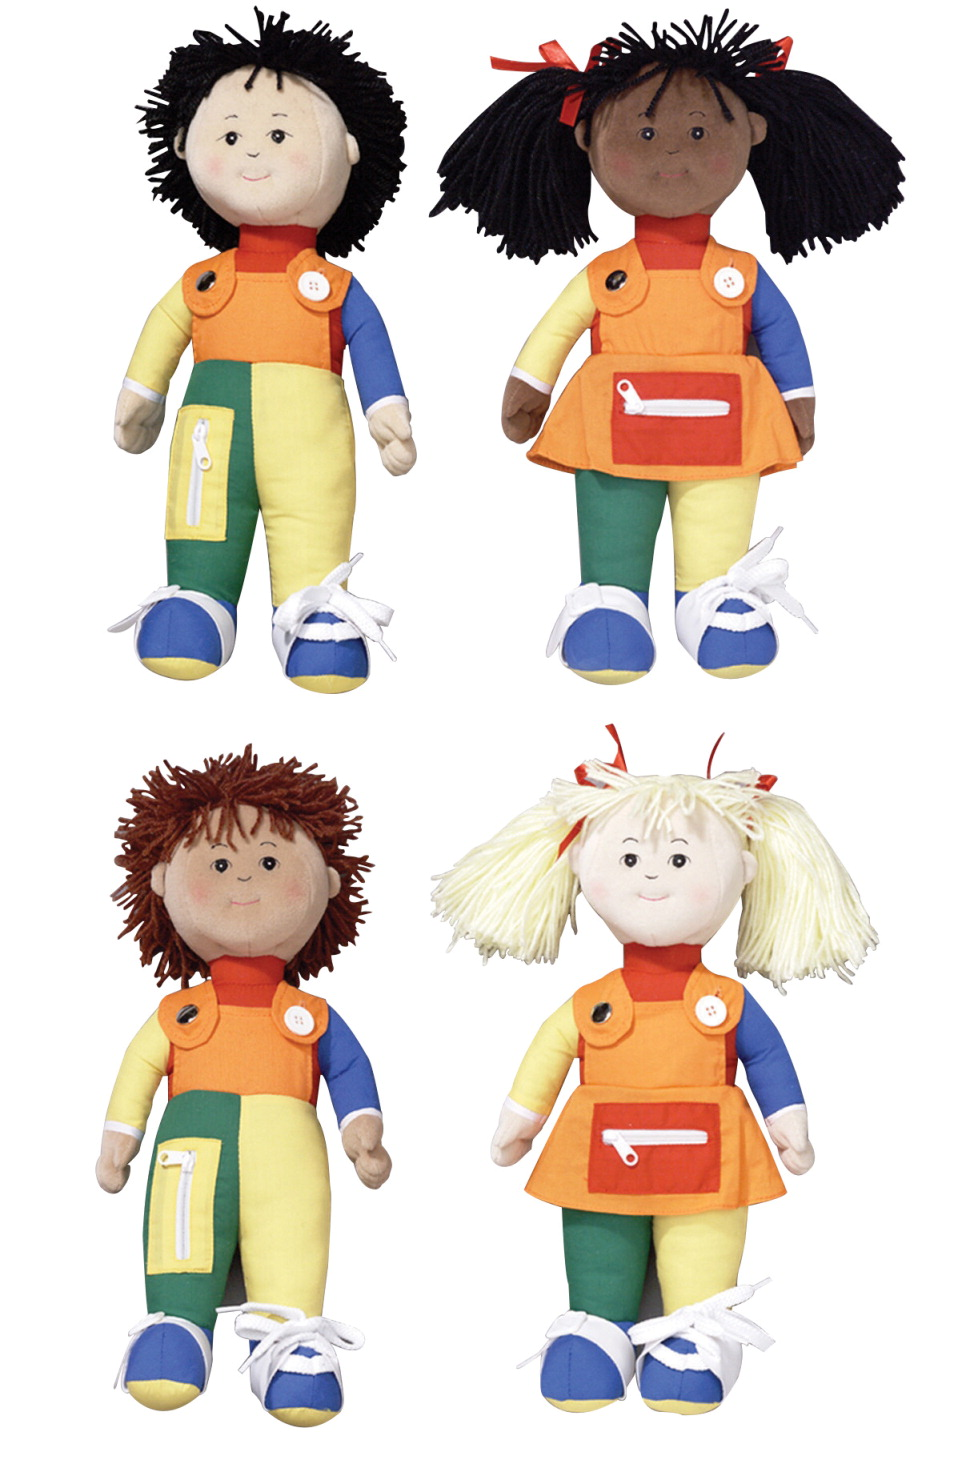 Childrens Factory Doll Set - SCHOOL SPECIALTY MARKETPLACE